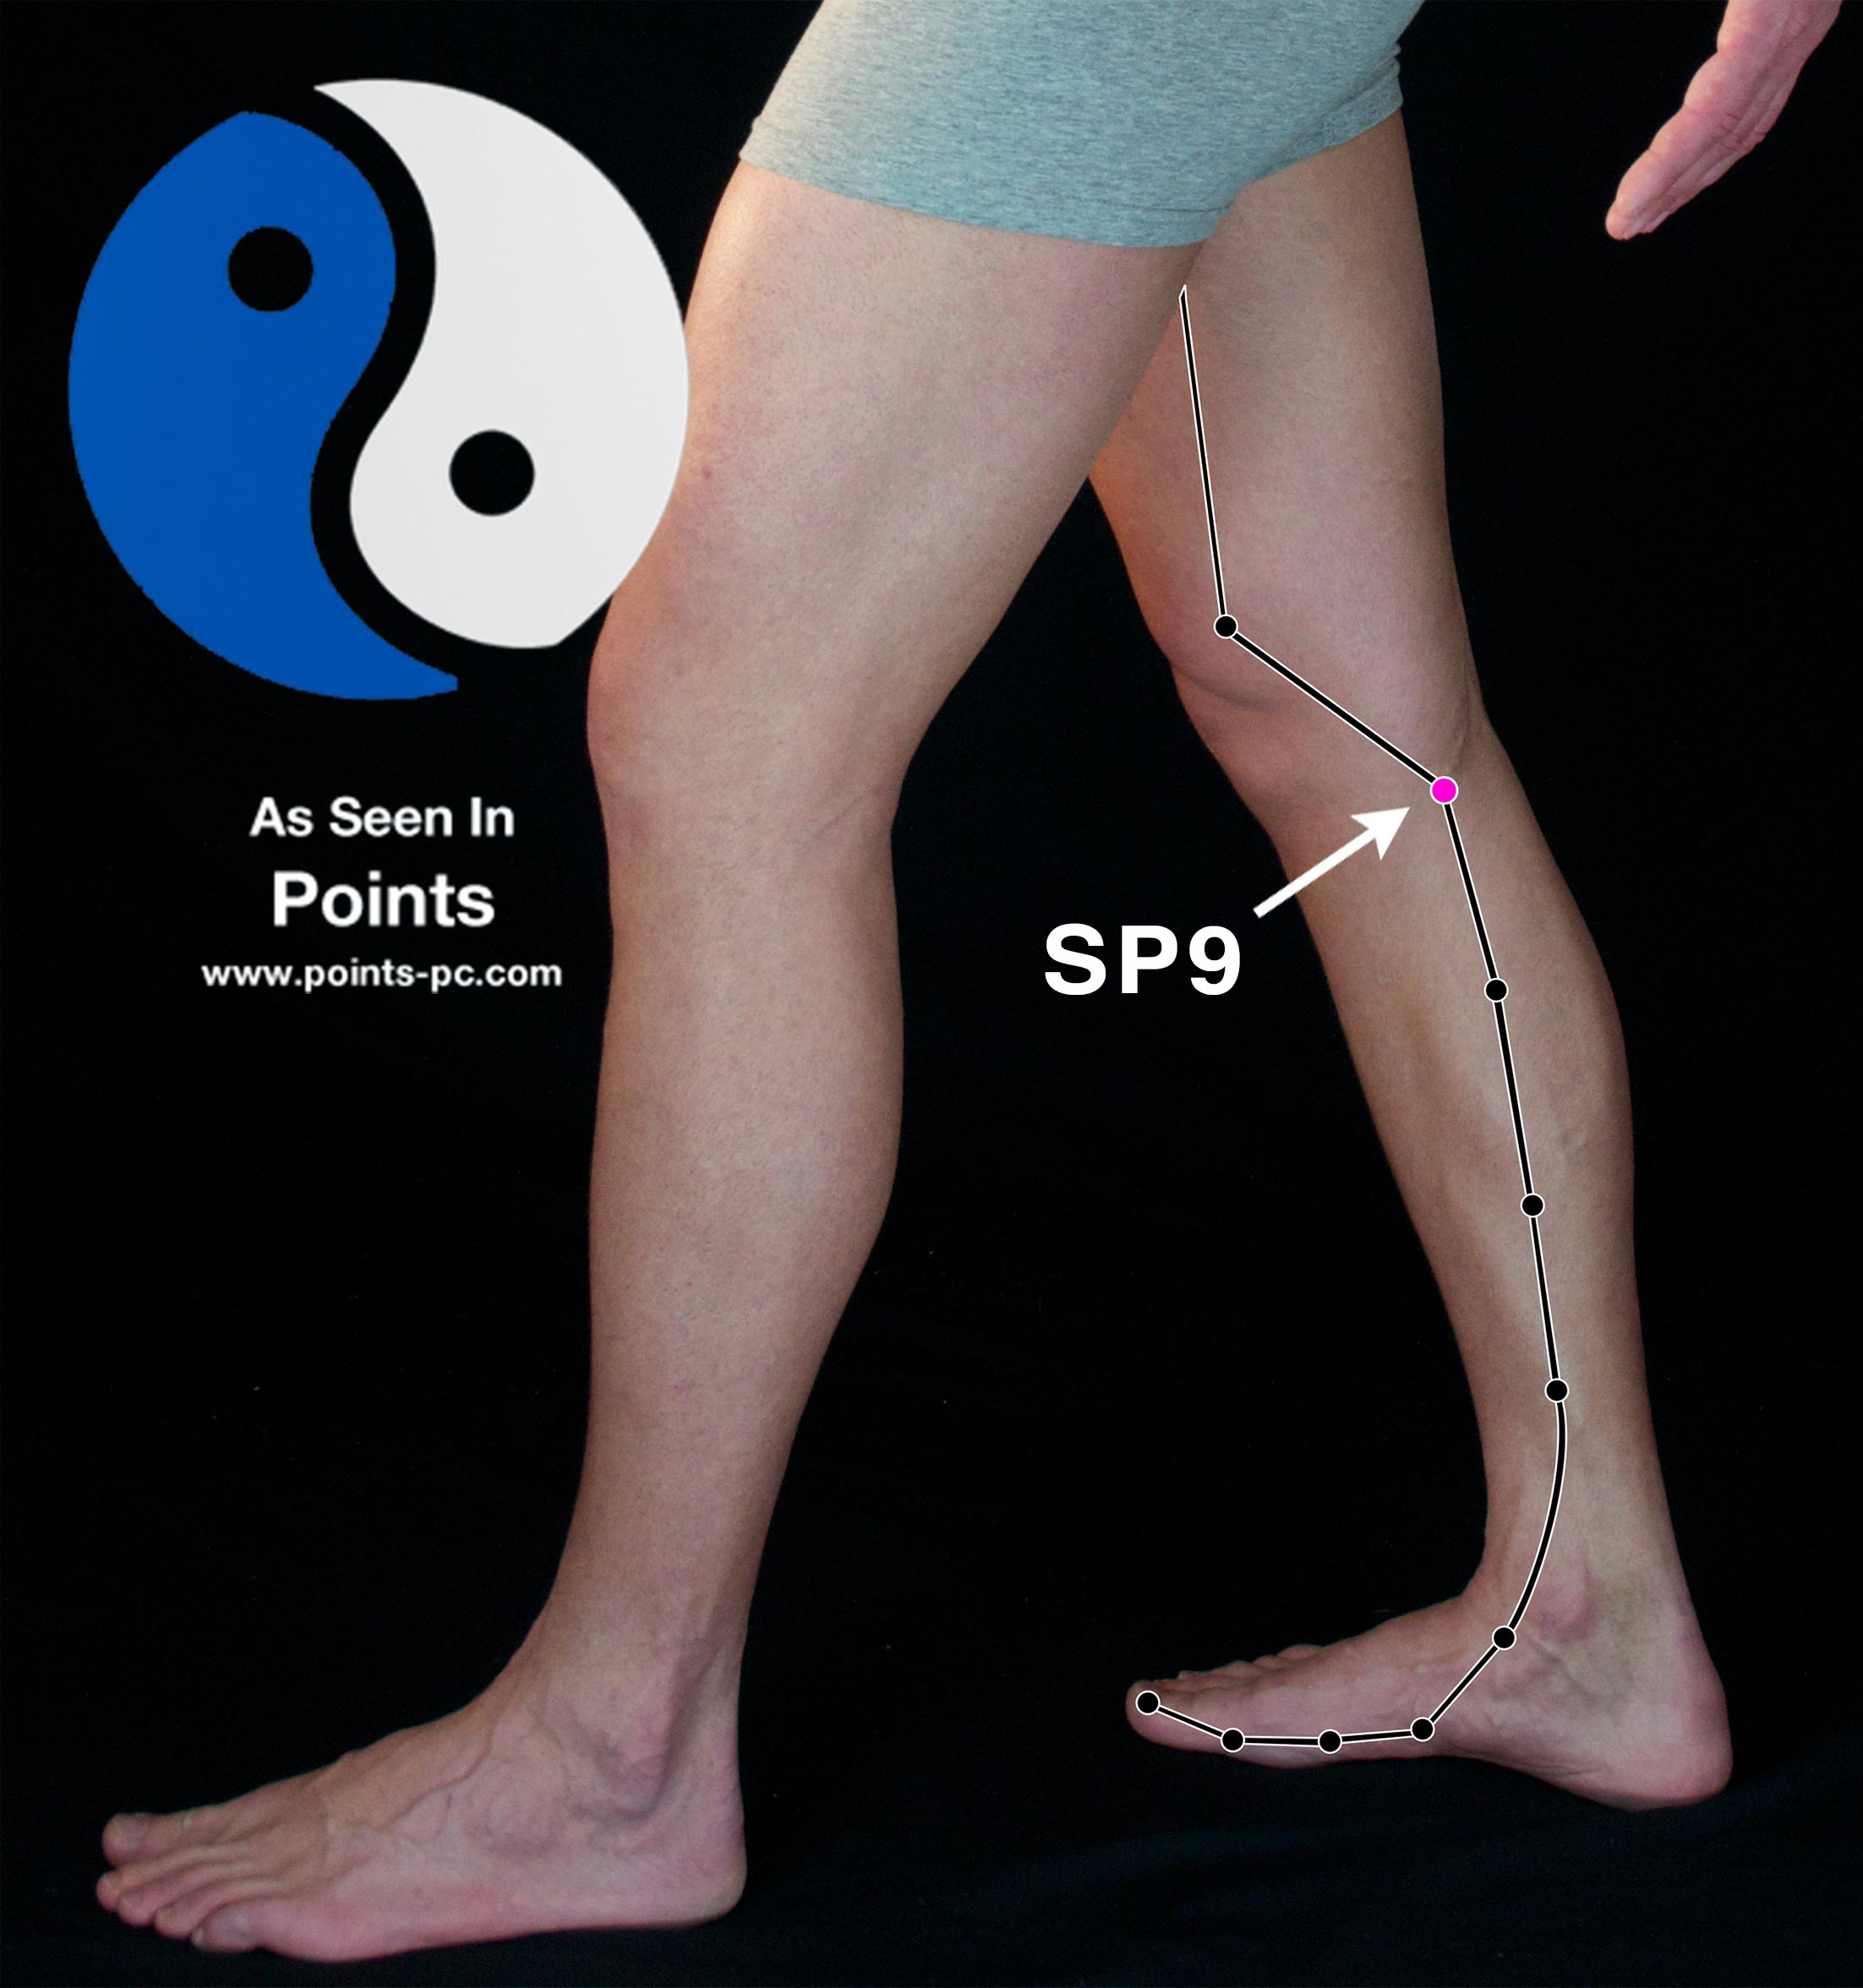 Acupuncture Point: Spleen 9 - Acupuncture Technology News